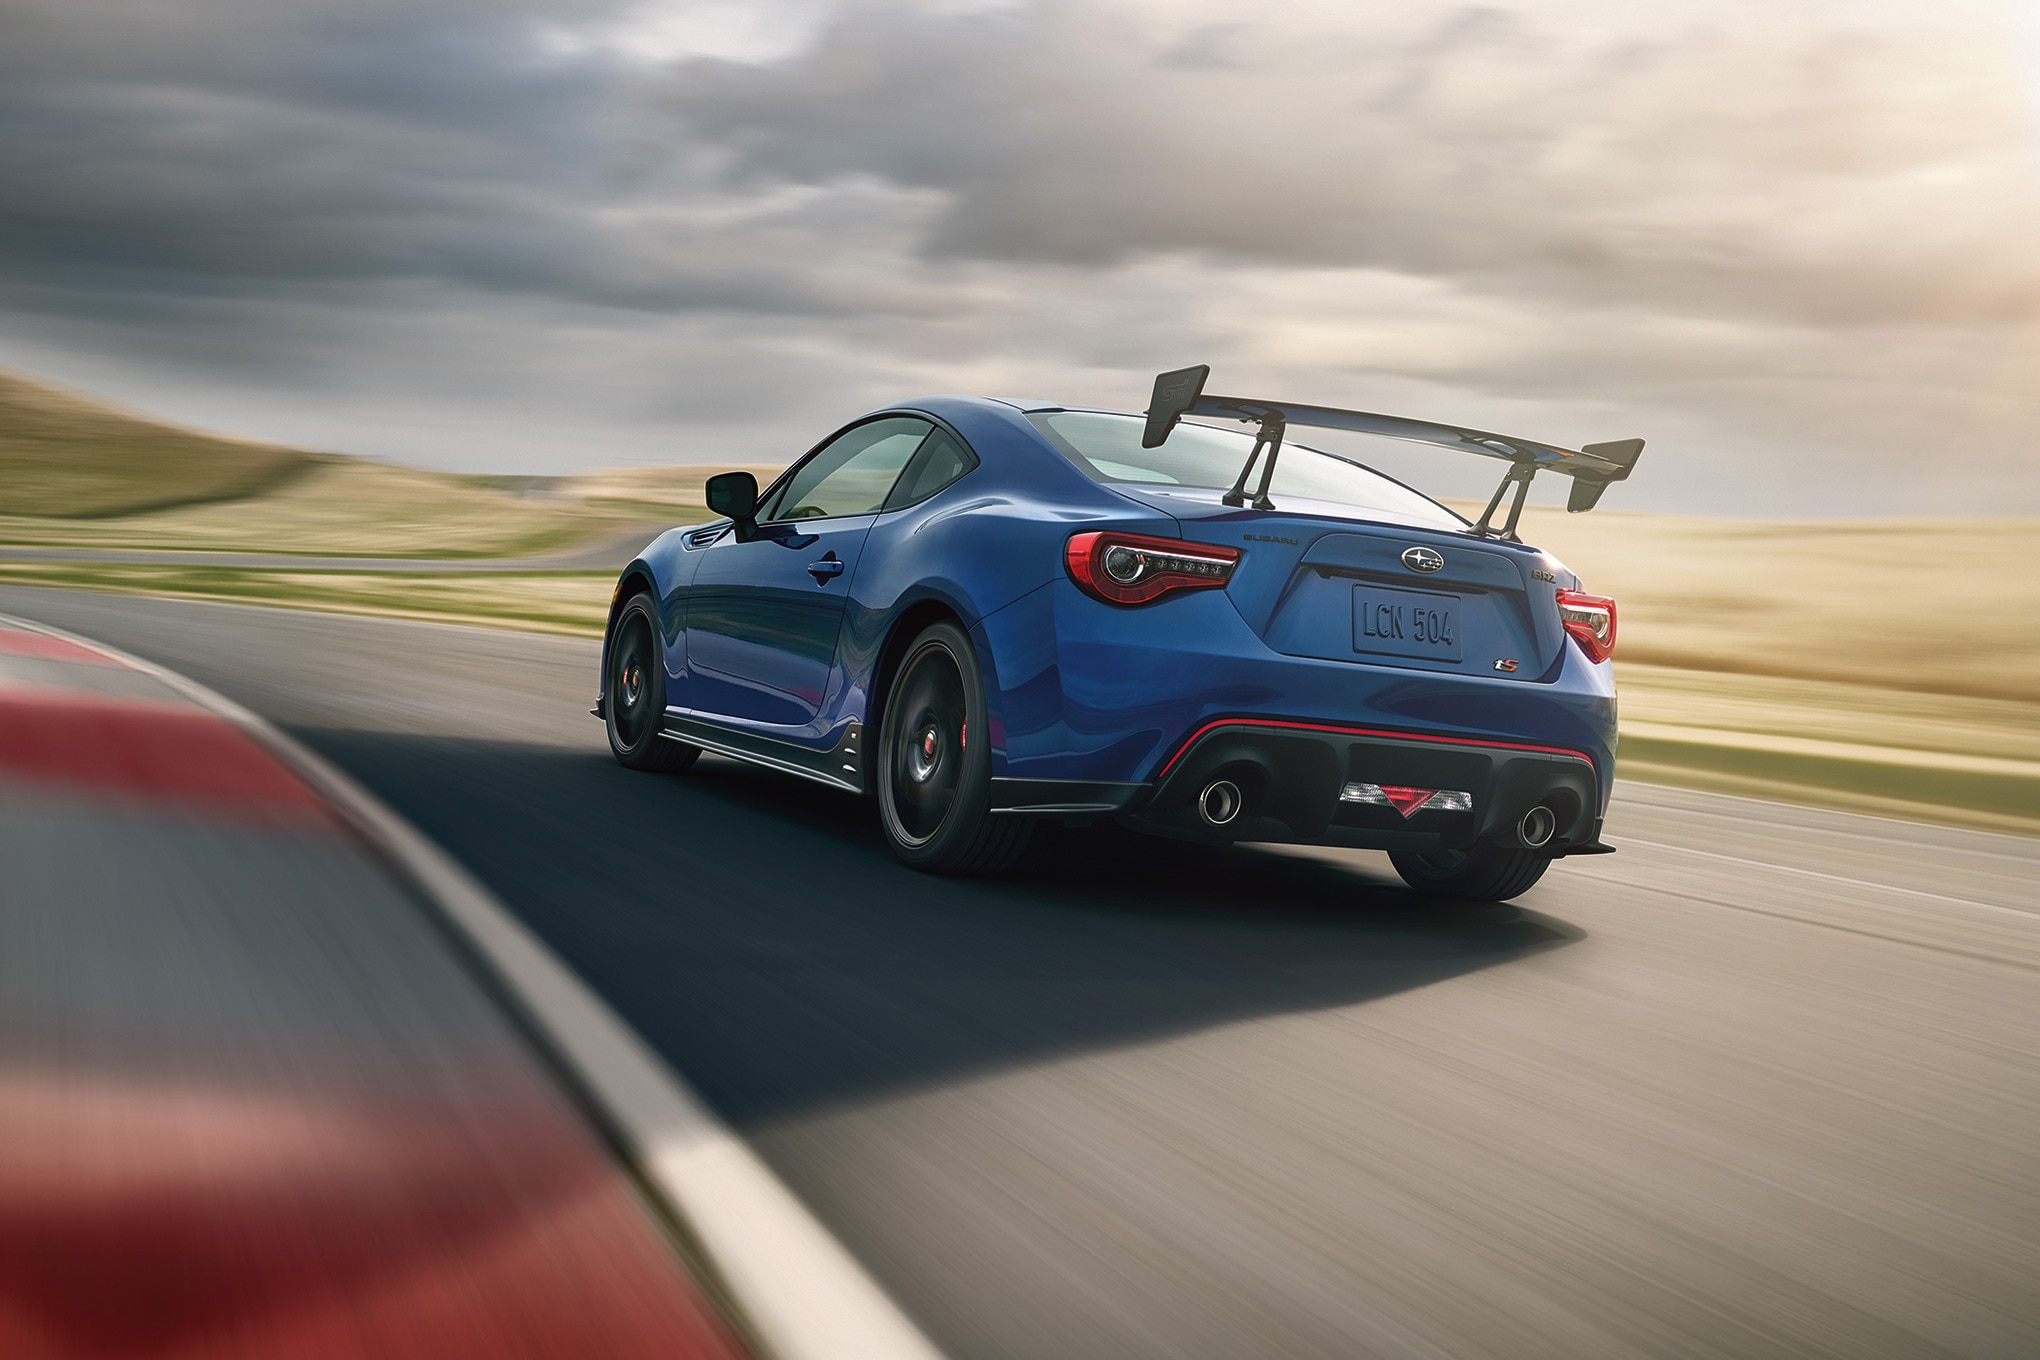 Subaru Announces Performance-Focused Limited Edition WRX STI, BRZ Models